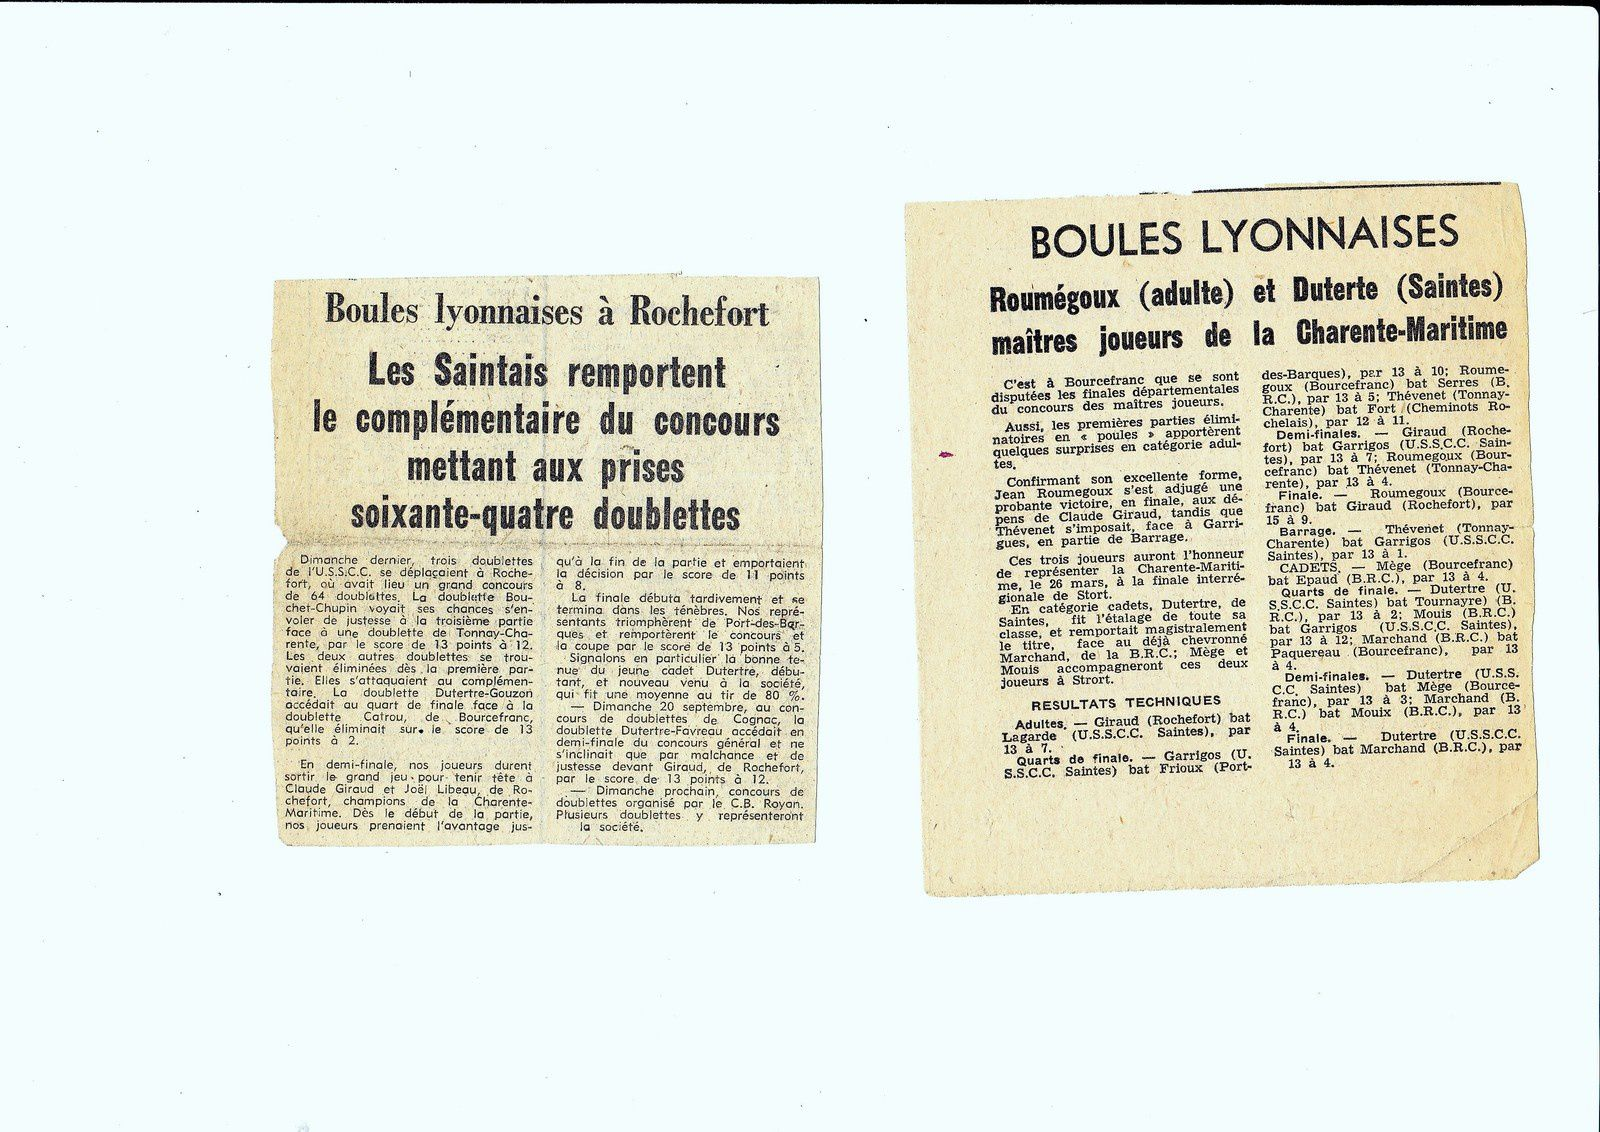 Documents de 1972